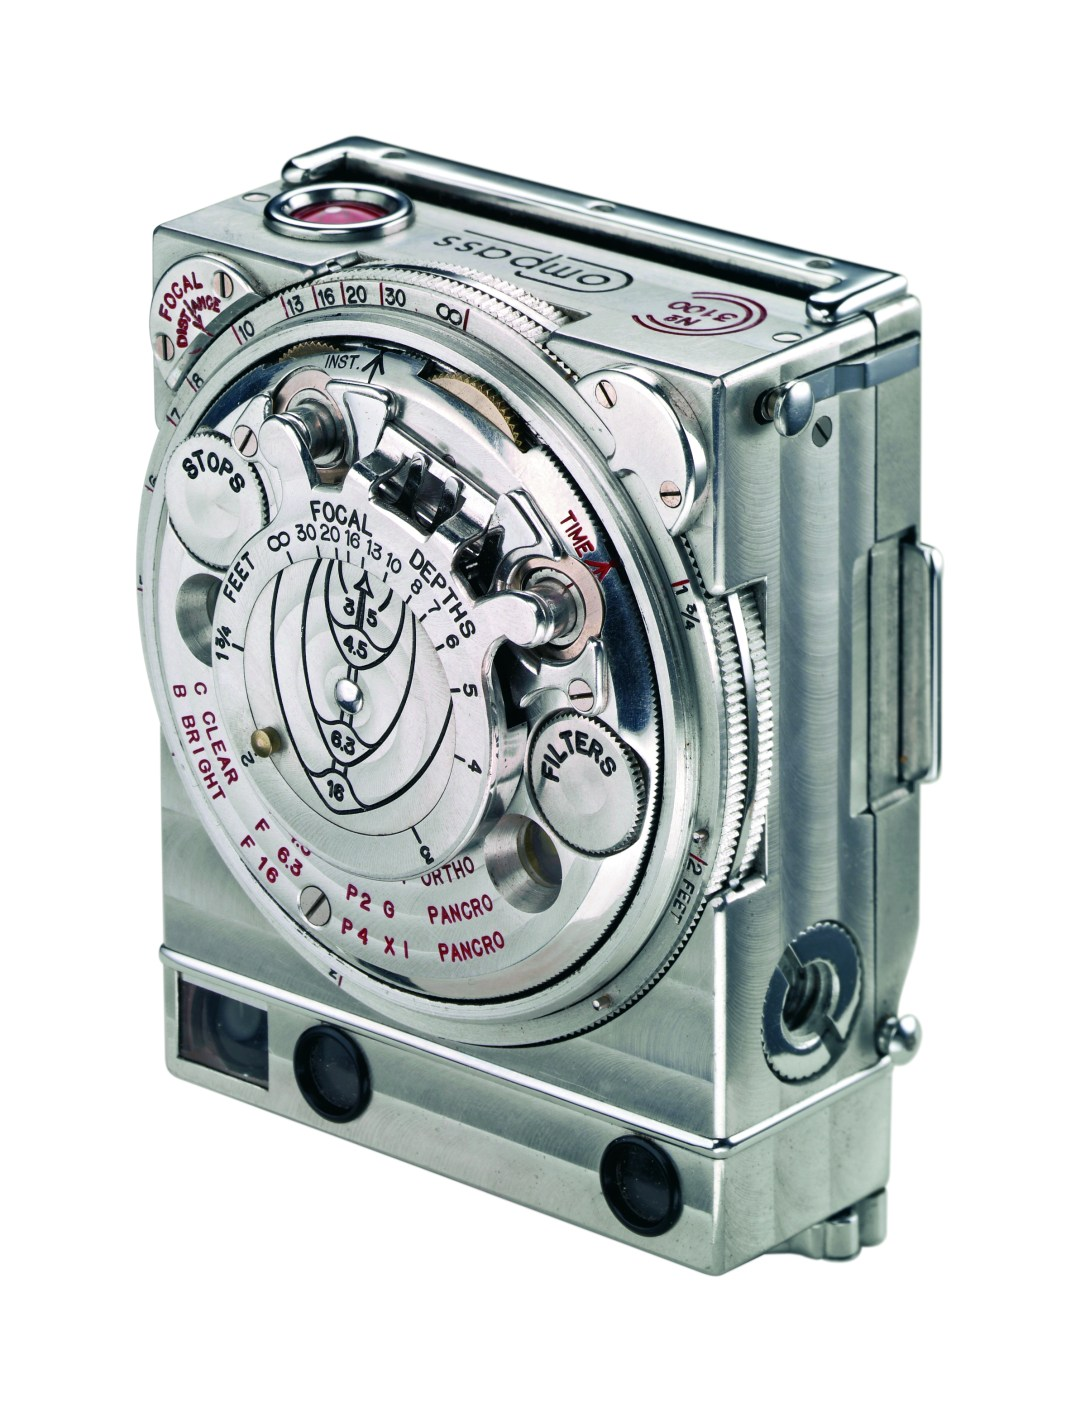 1938 Compass Camera_LeCoultre (1).jpg